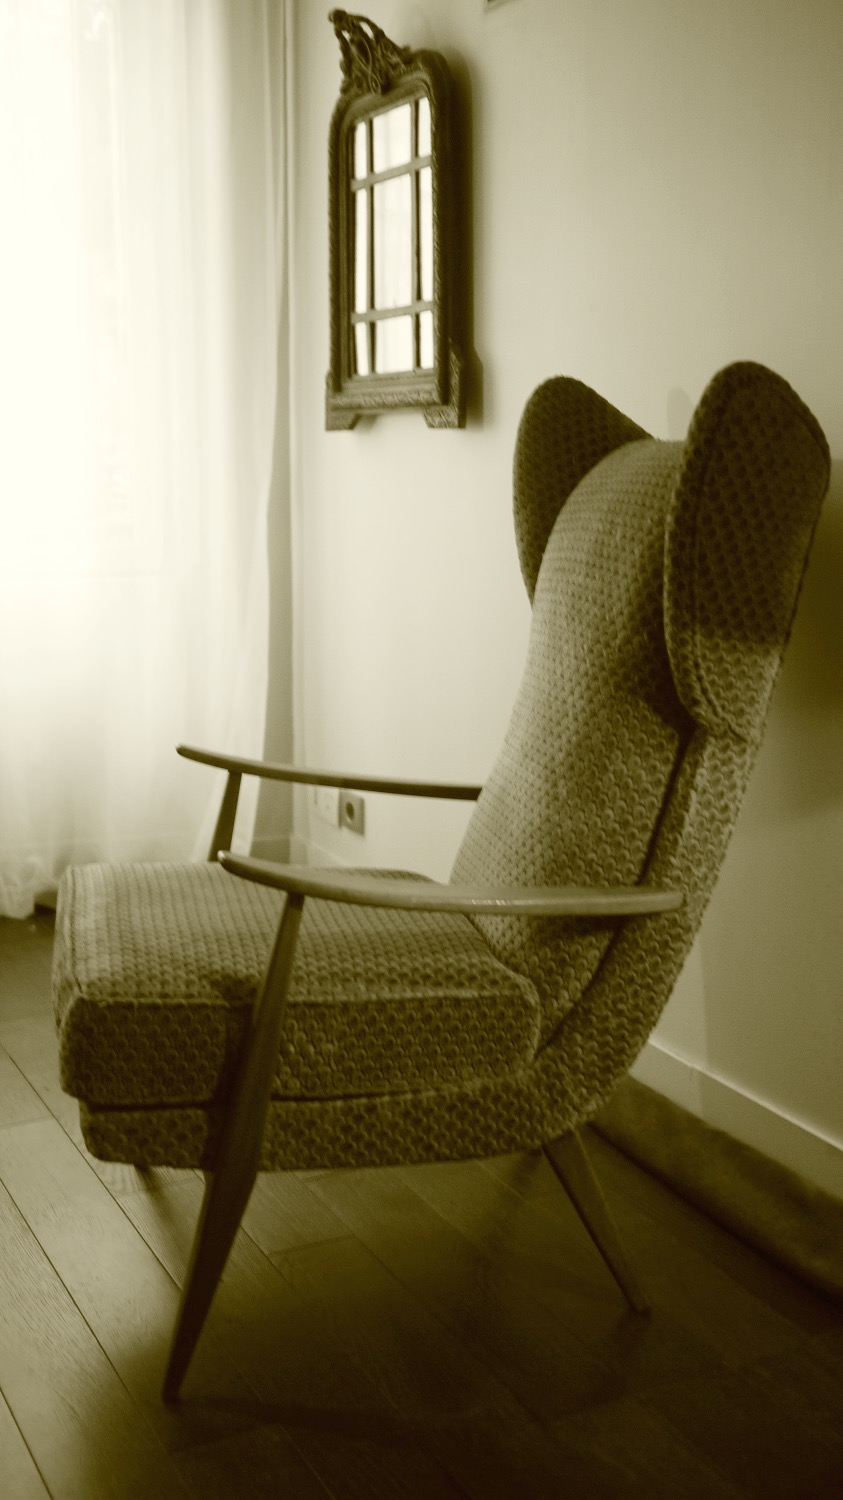 PROJET 5 : Le Wing chair